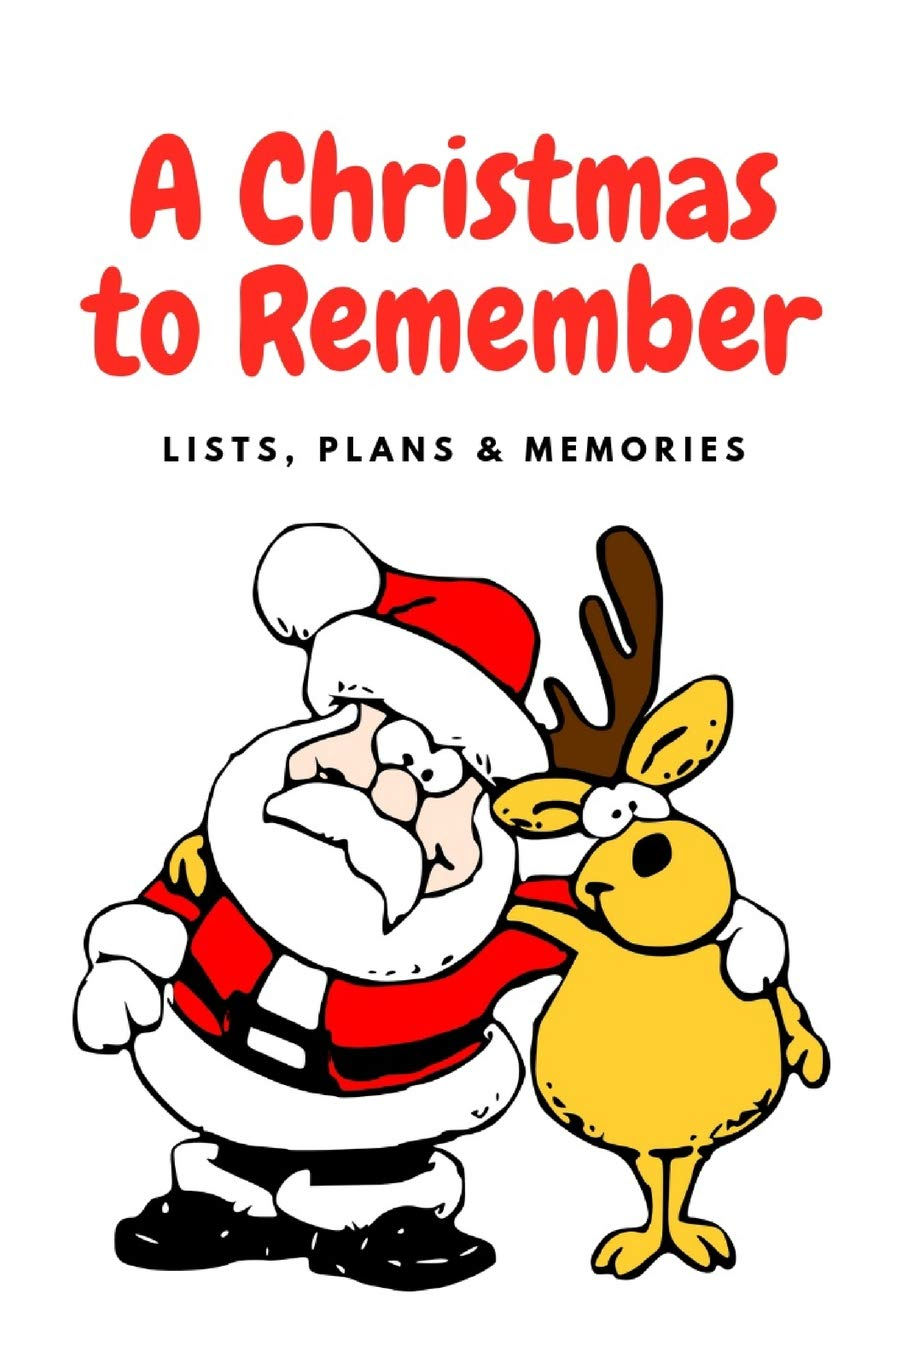 A Christmas To Remember 2019 A Christmas to Remember: 2019 Holiday Plans Lists & Memories